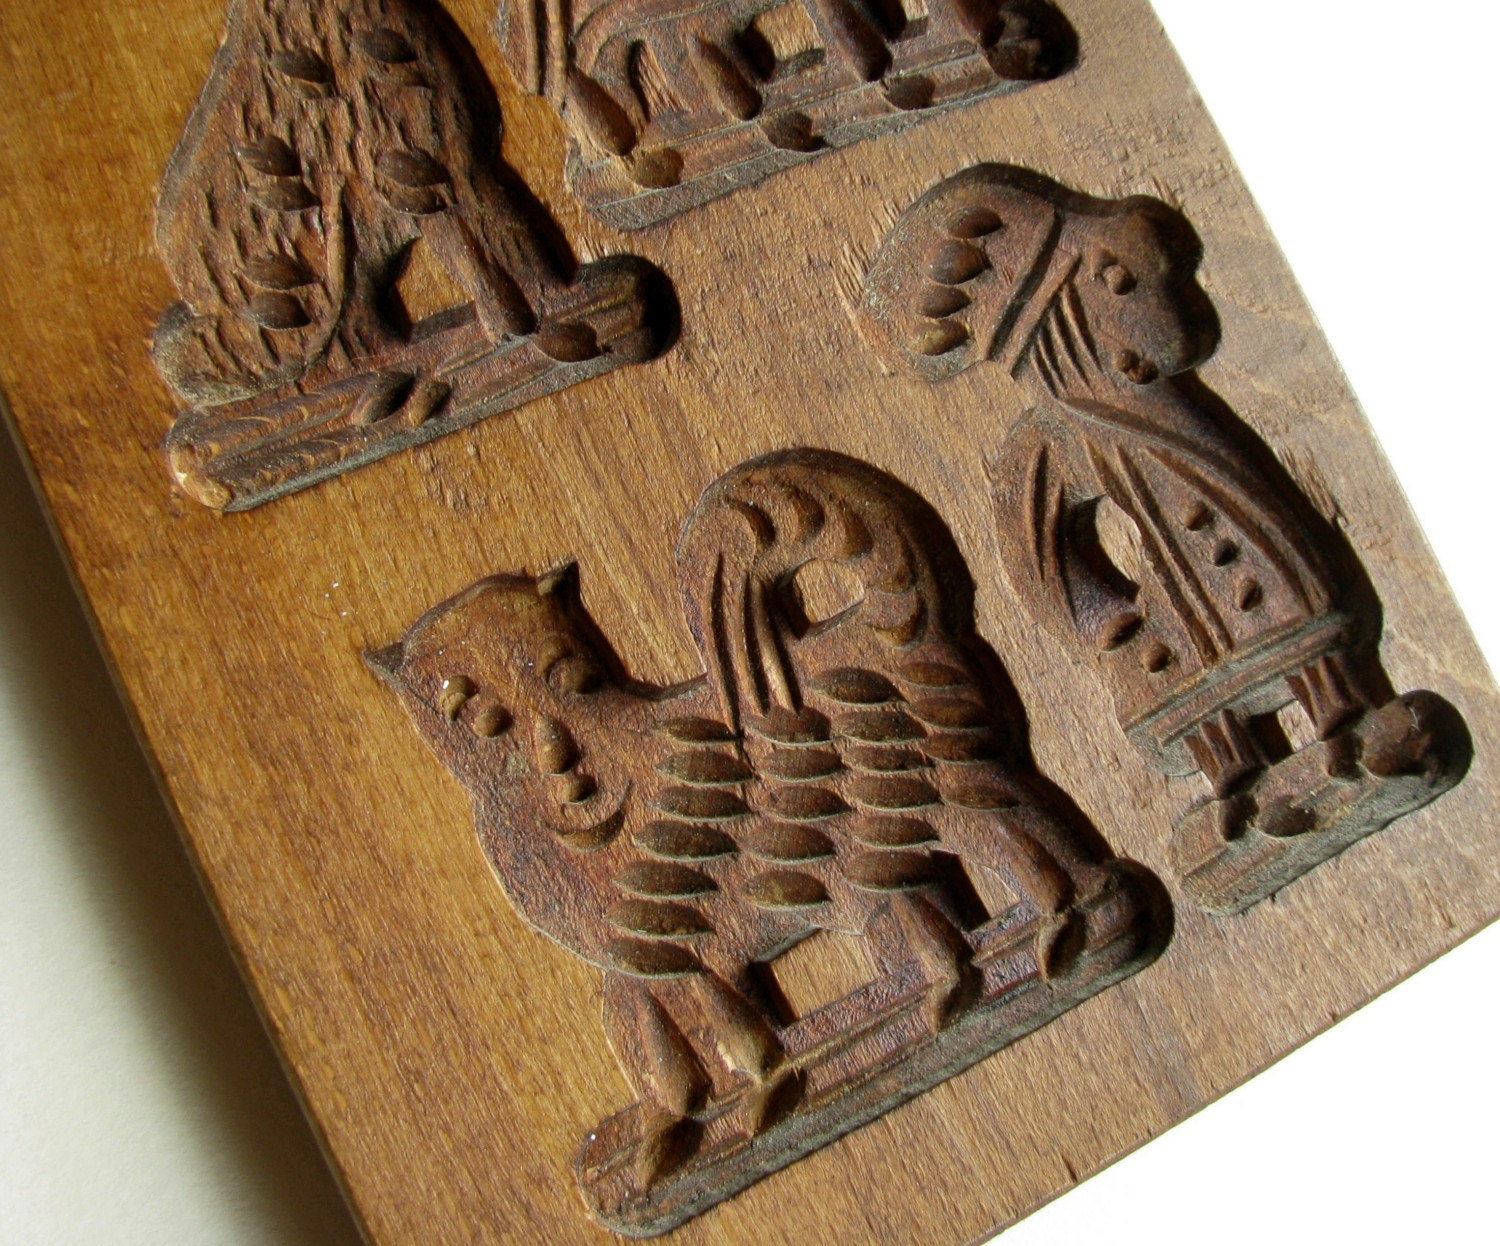 Antique Wooden Hand Carved Springerle Cookie Mold